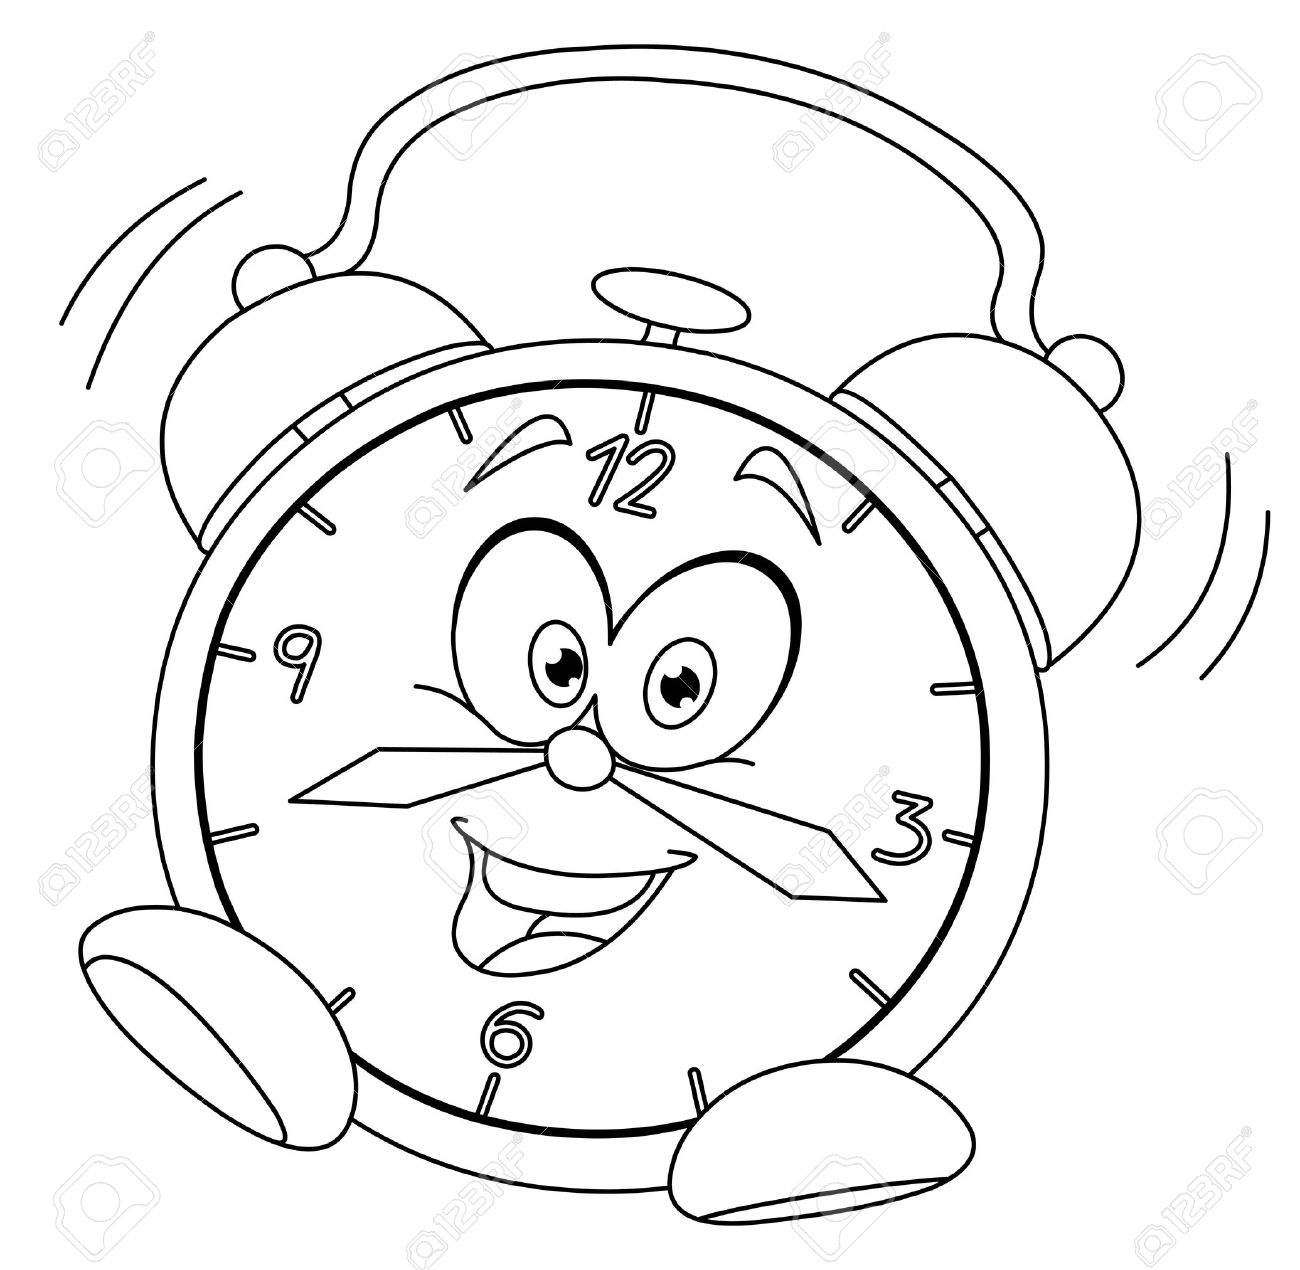 Outlined Cartoon Alarm Clock Vector Illustration Coloring Page